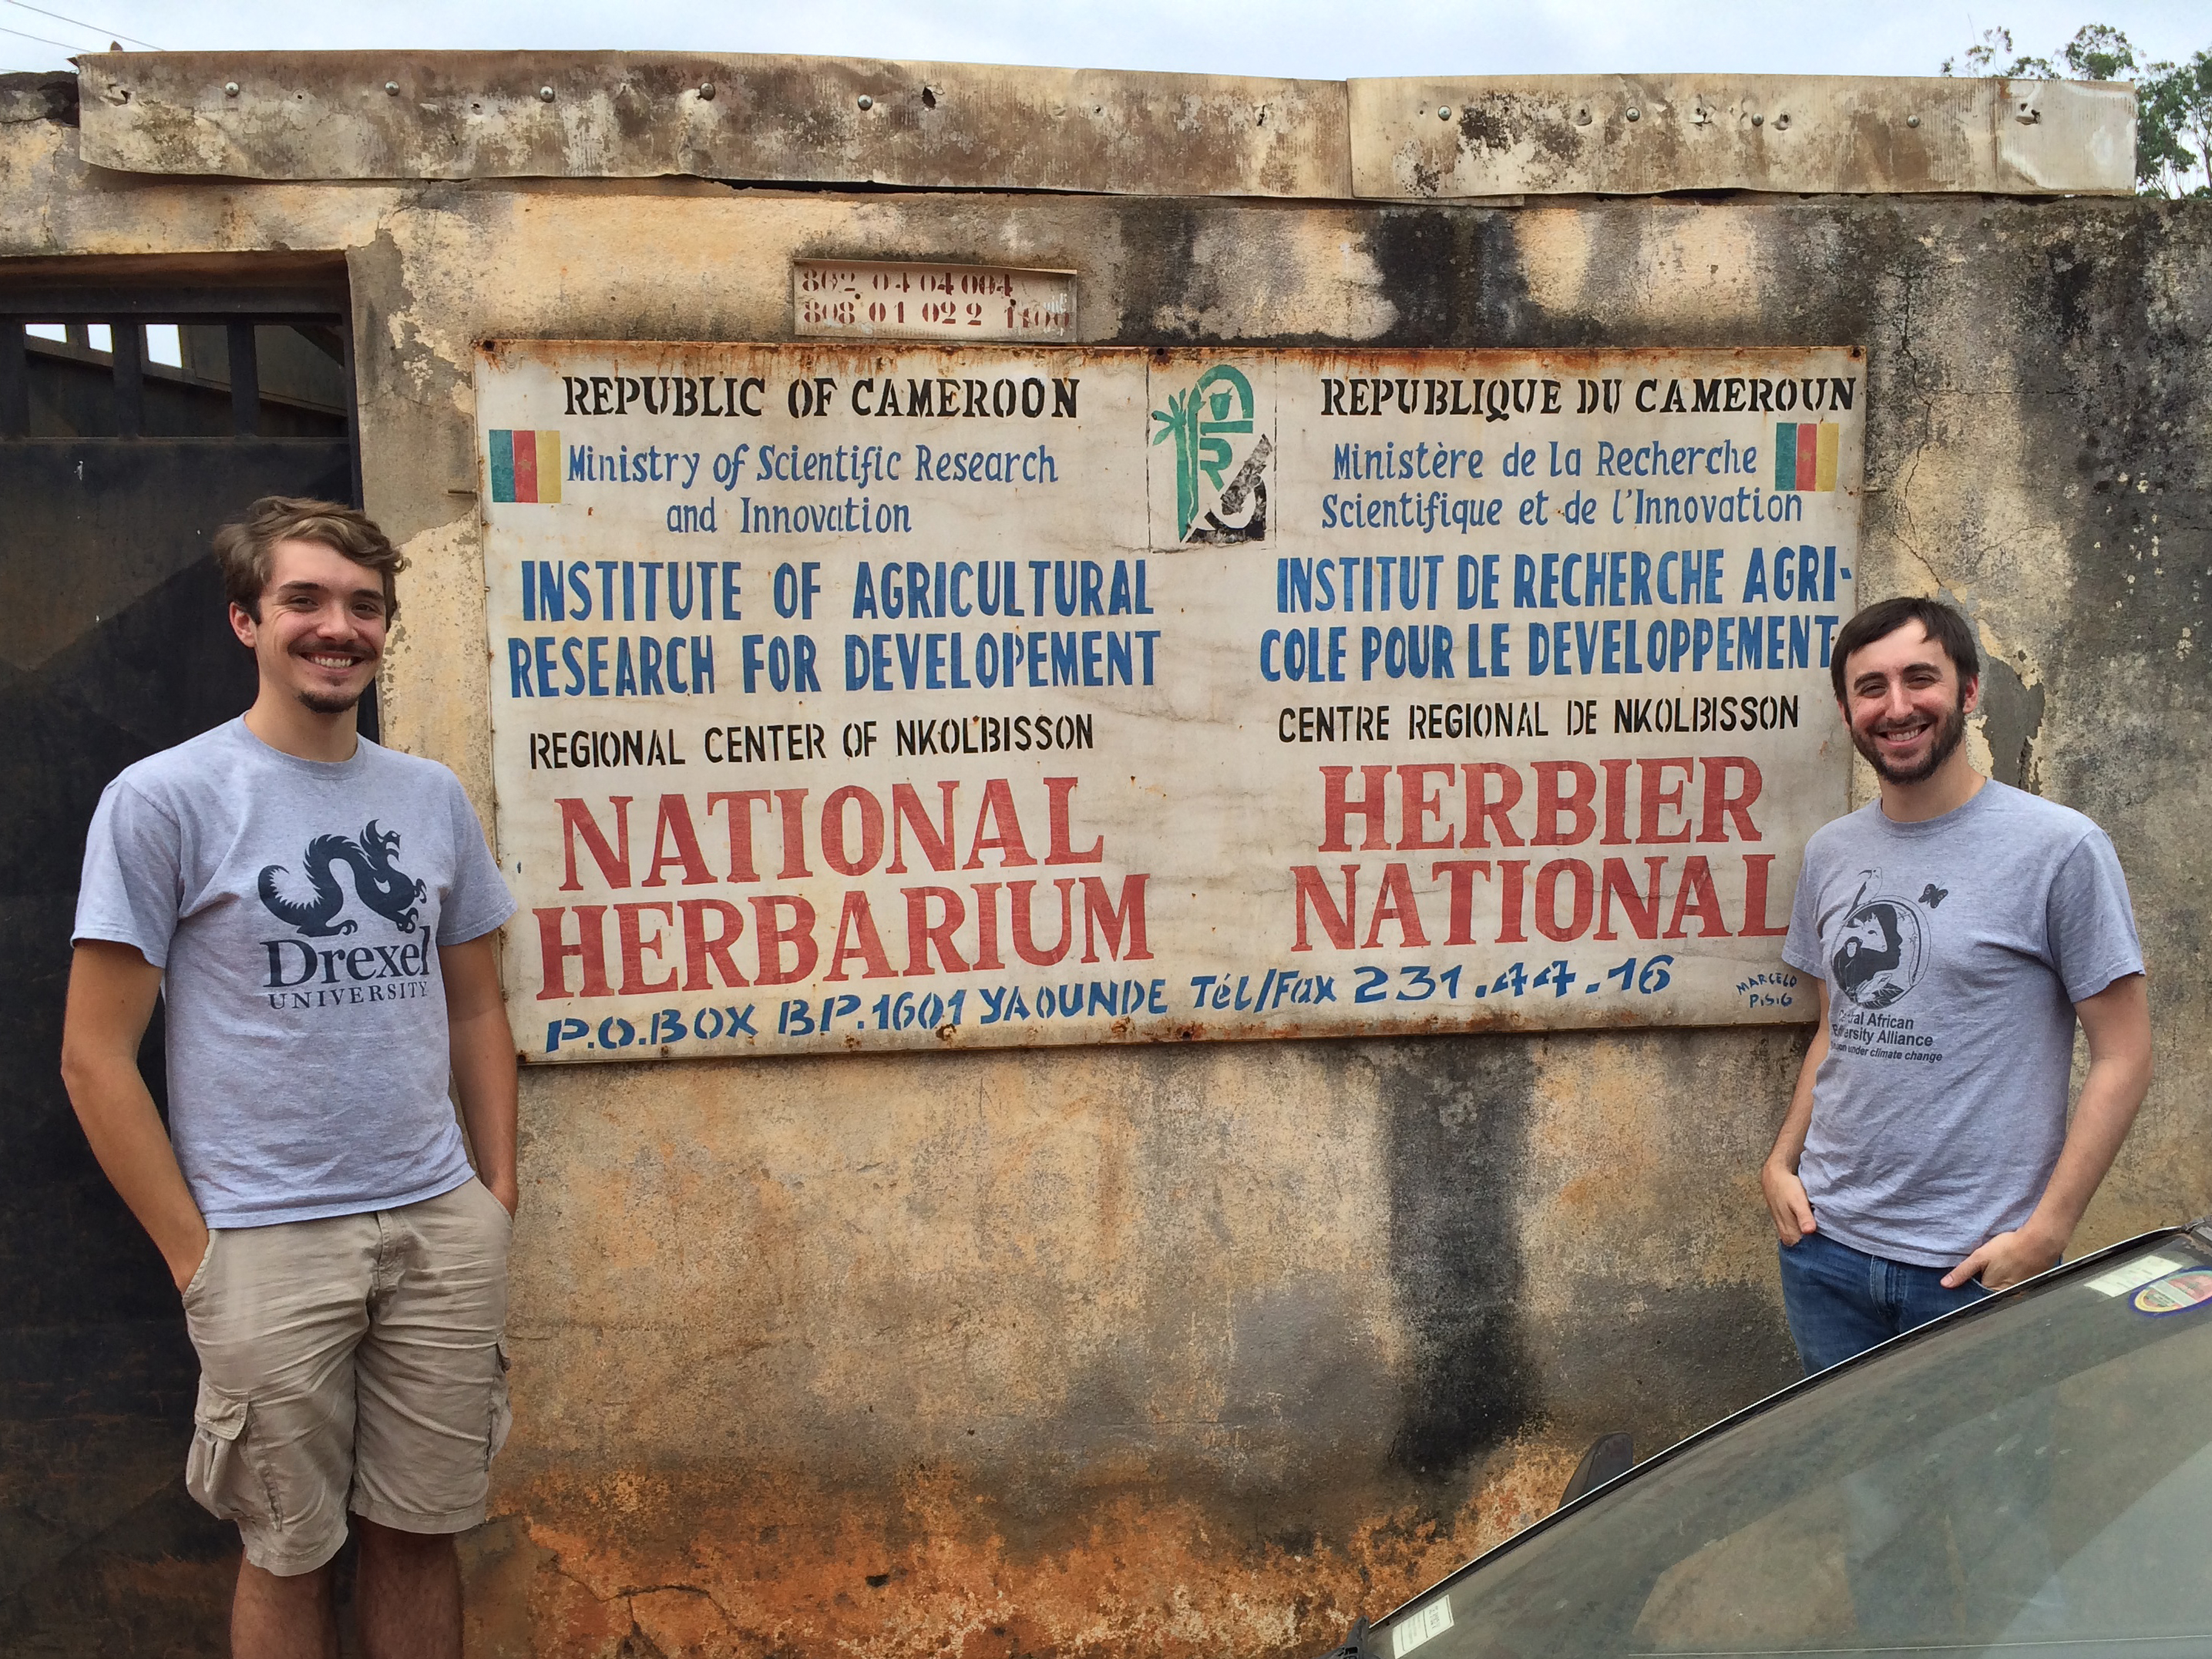 Paul Sesink Clee (left) and Matthew Mitchell (right) in Cameroon